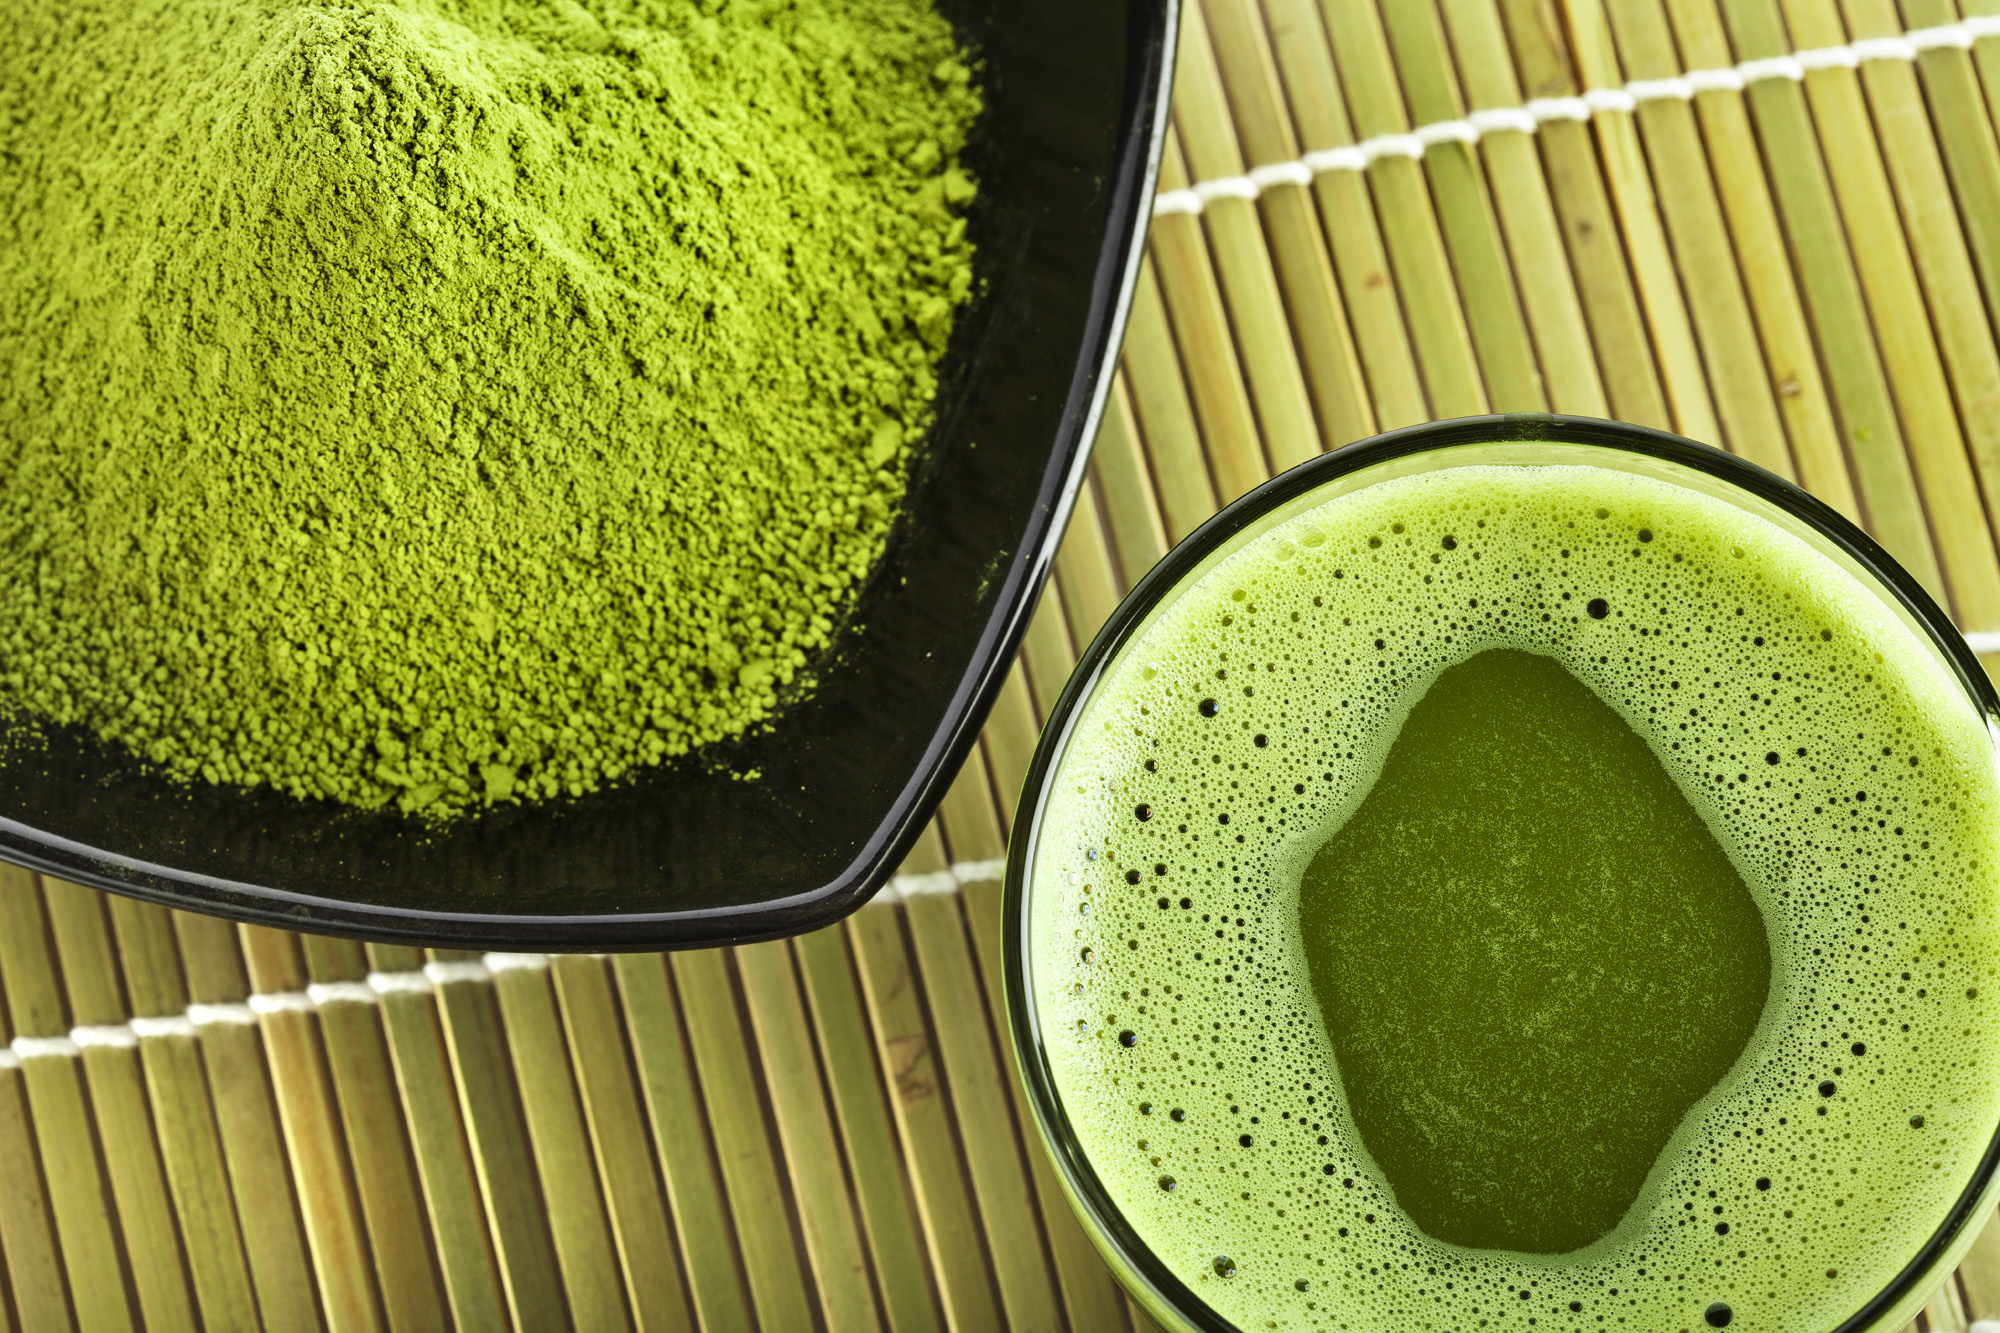 EGCG from green tea is shown to have potent anti-ageing, antioxidant, lipolytic and anti-fibrotic properties